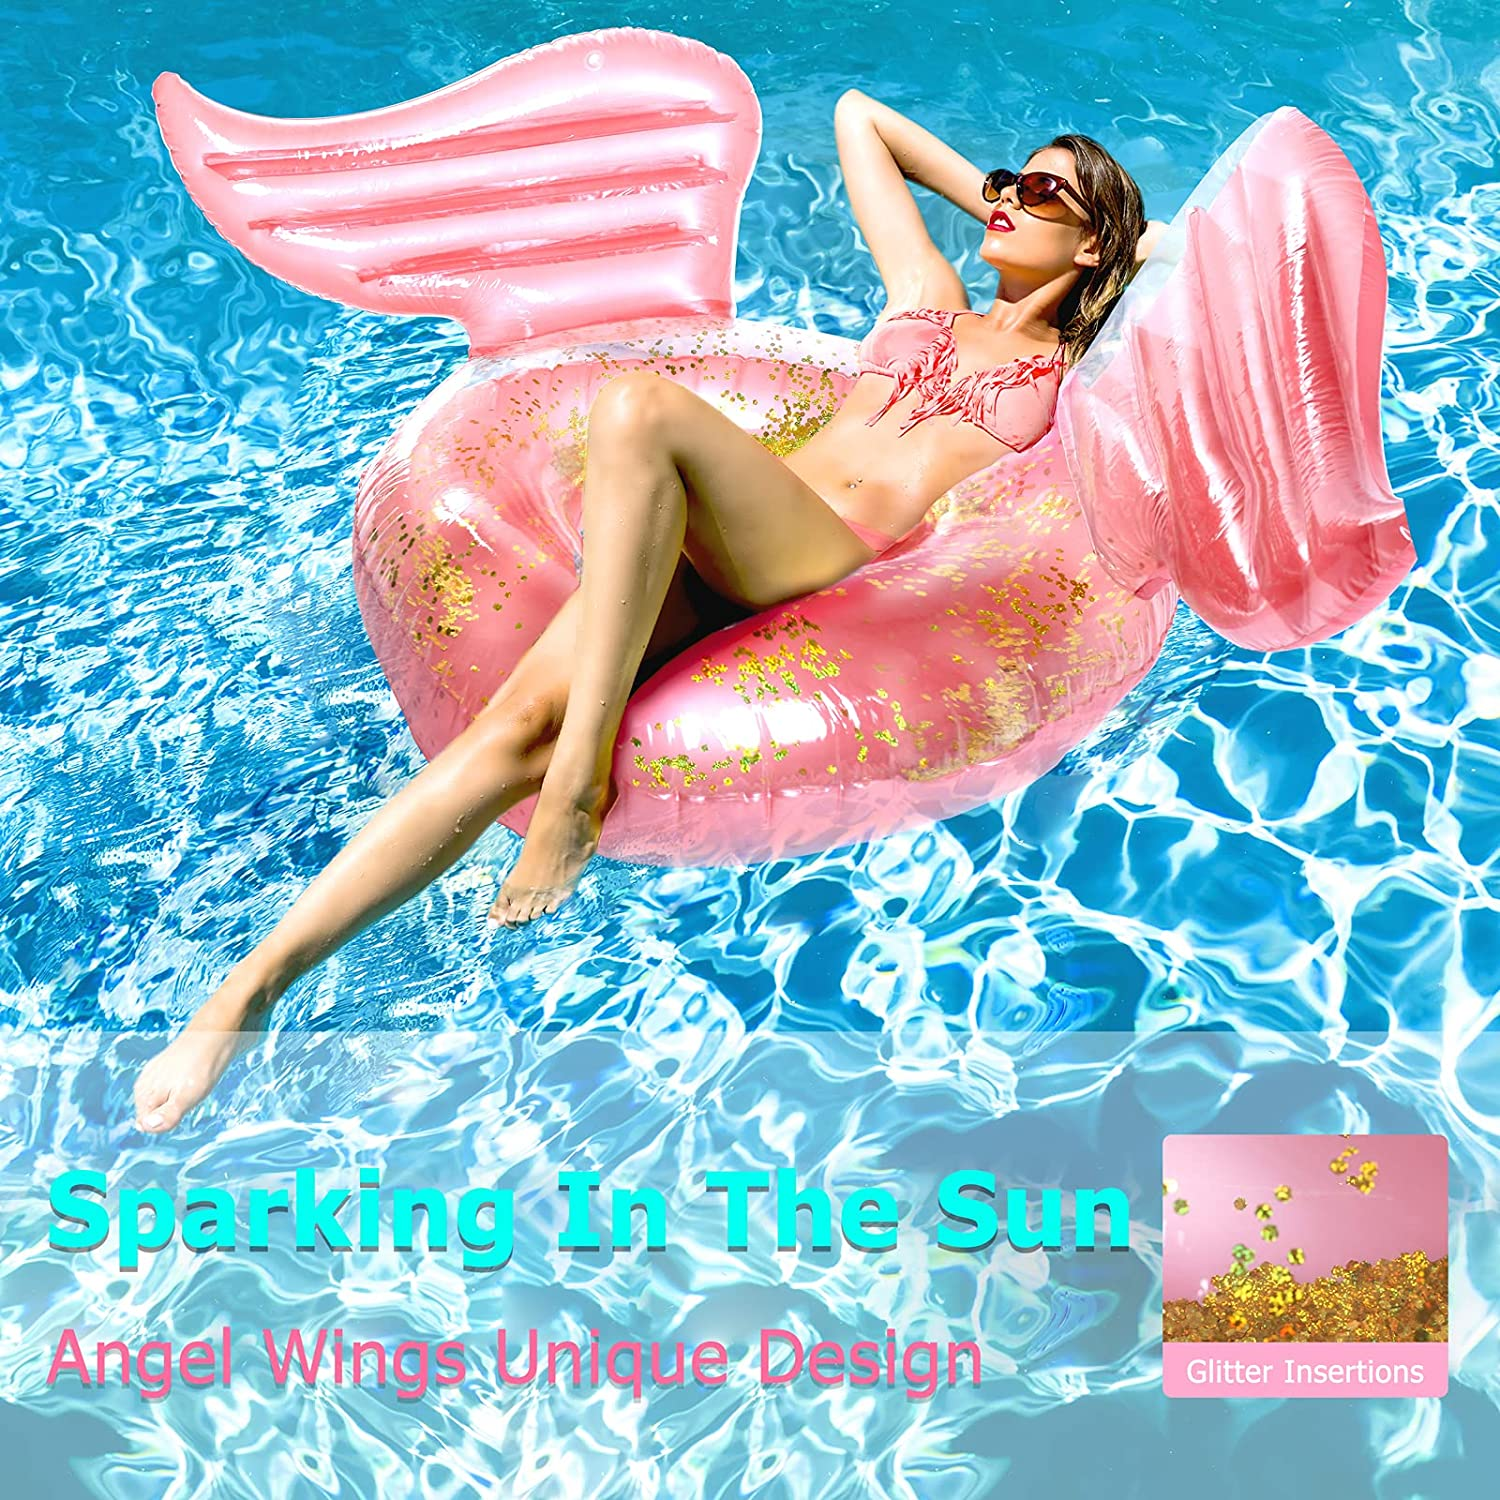 JLCCKJJS Inflatable Pool Floats with Glitter Angel Wings Sparkle Swimming Float Tubes Glitter Transparent Lounger for Kids Adults Swim Toys for Summer Pool Party Decoration Swim Rings for Fun Beach